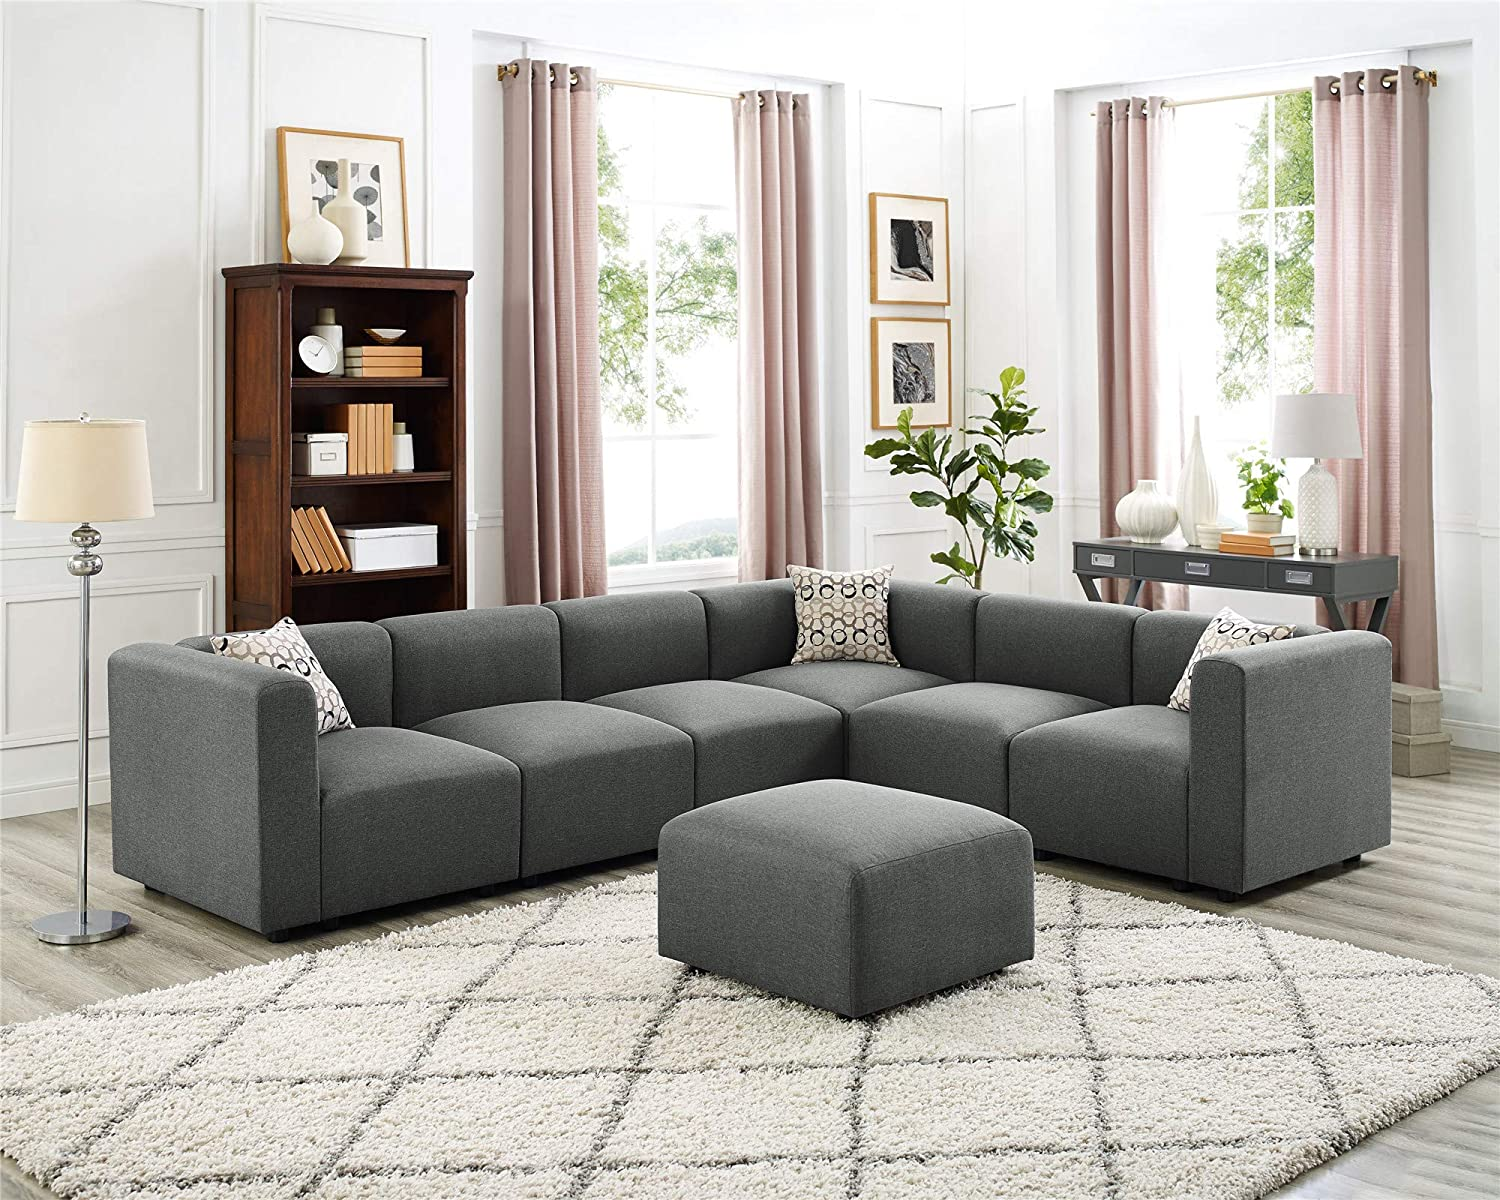 Amazon.com: Steel Grey Modular Sectional Sofas, 5 Seats L ...